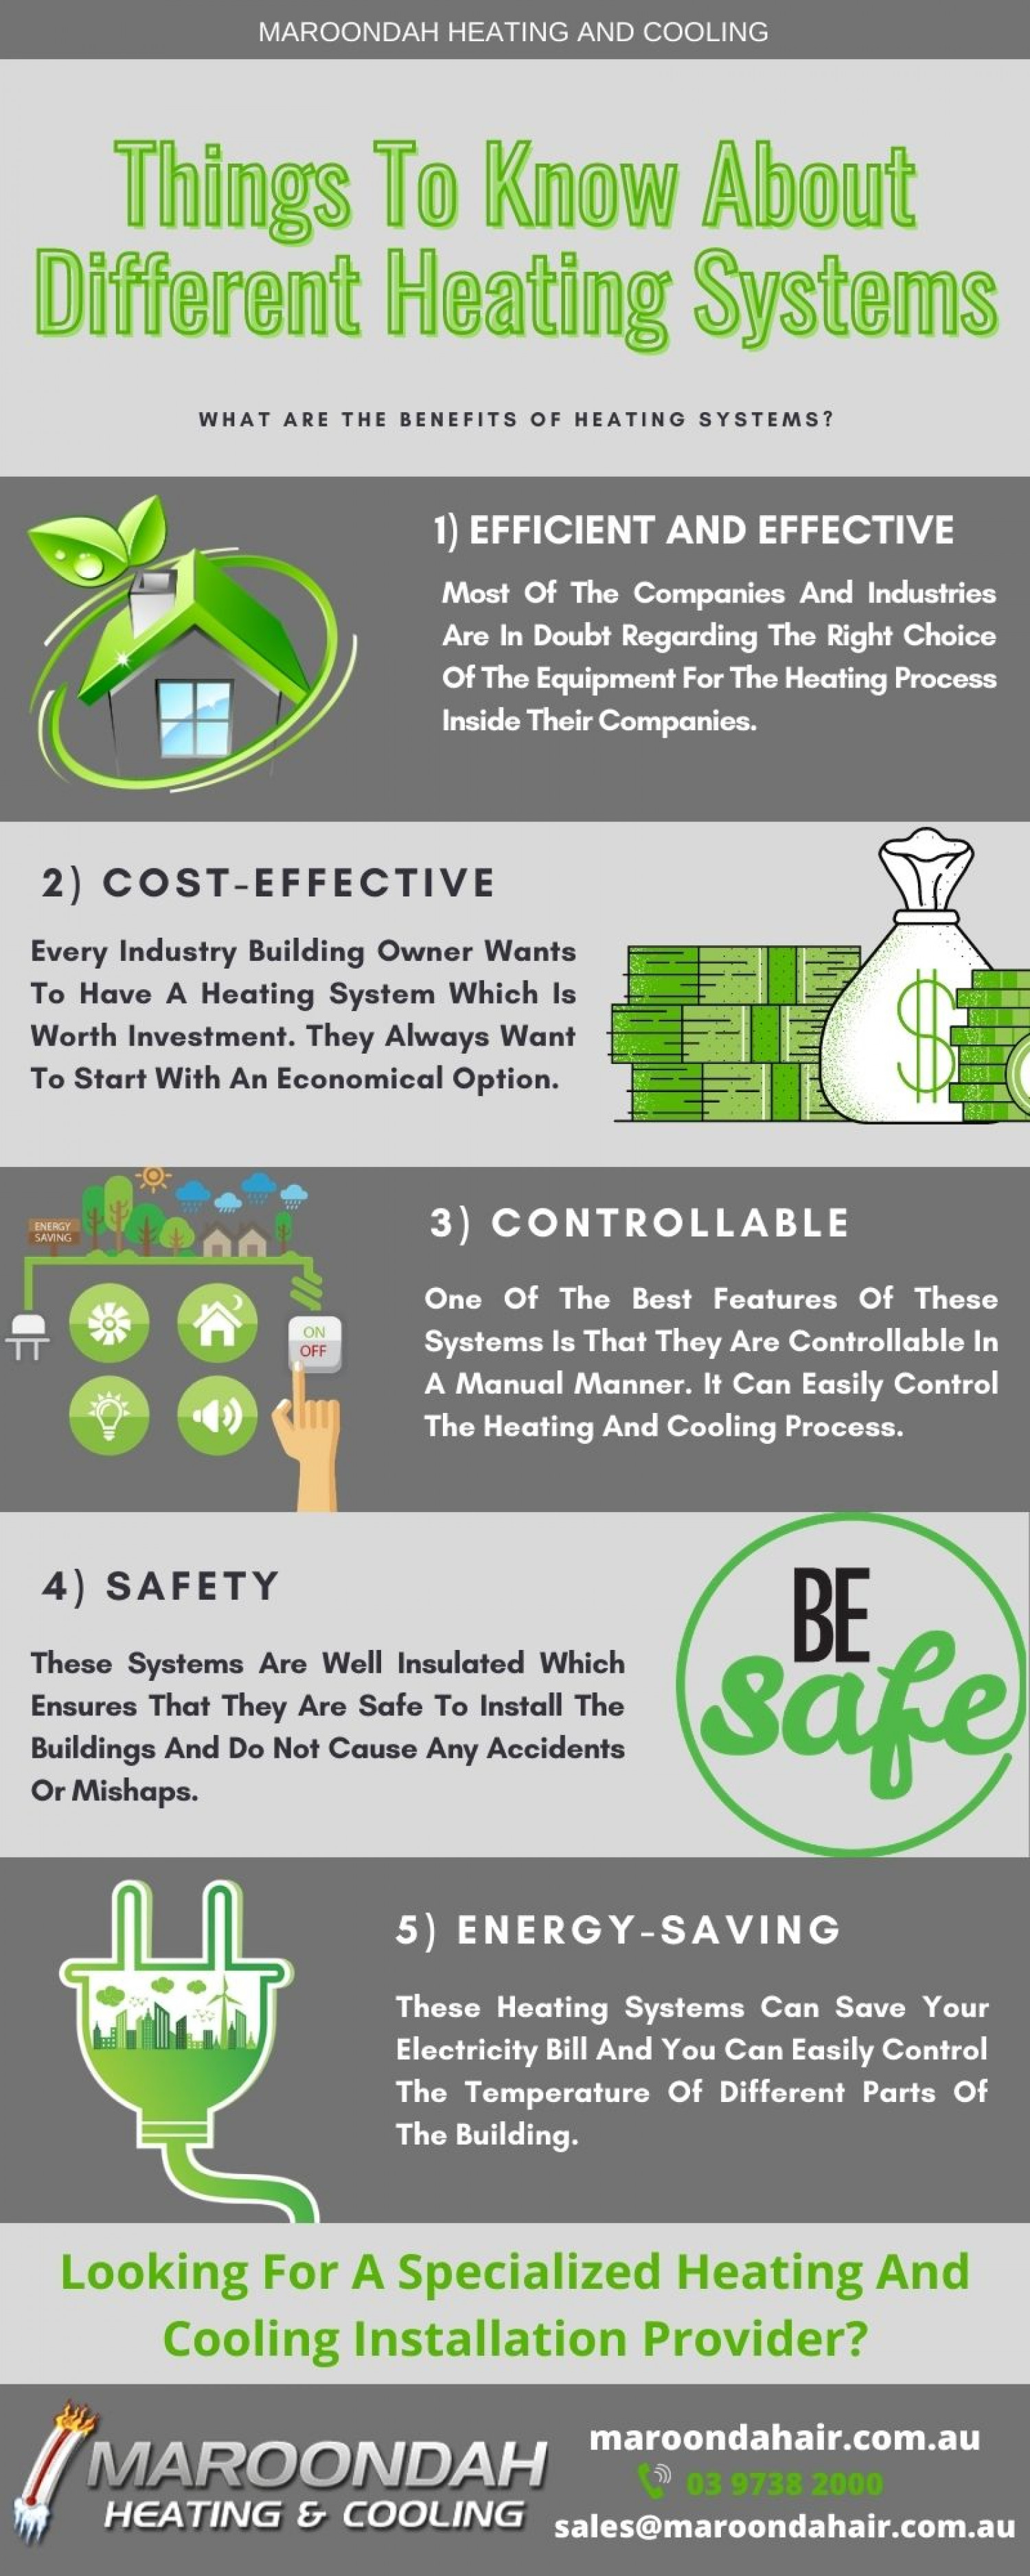 Things To Know About Different Heating Systems Infographic